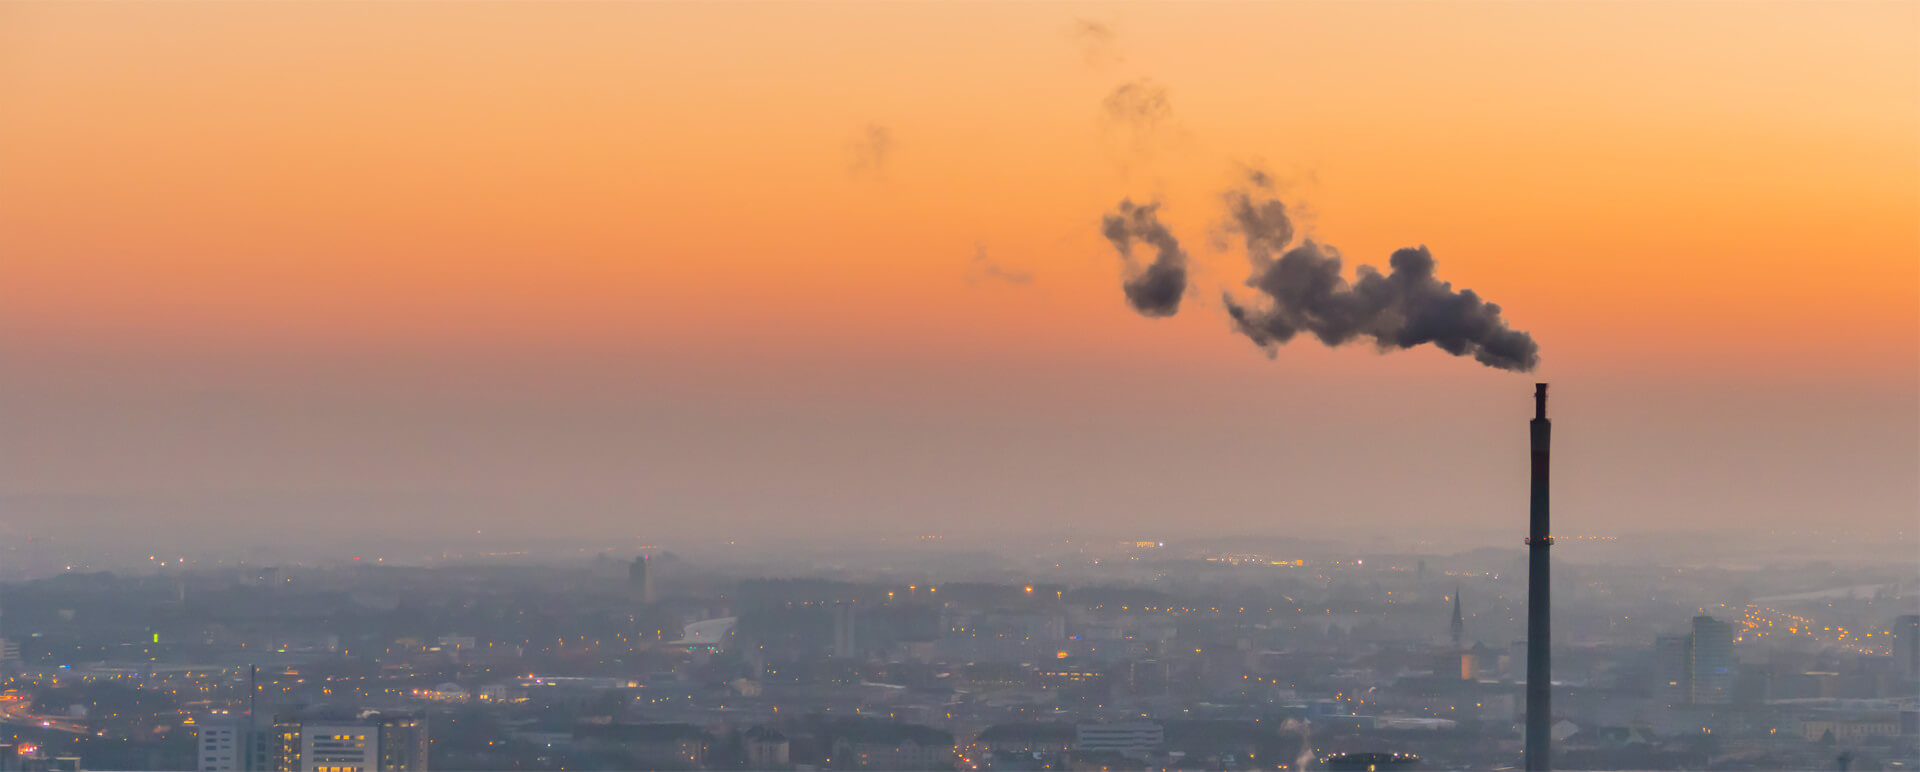 An emissions stack polluting hazardous chemicals and greenhouse gasses into the environment.